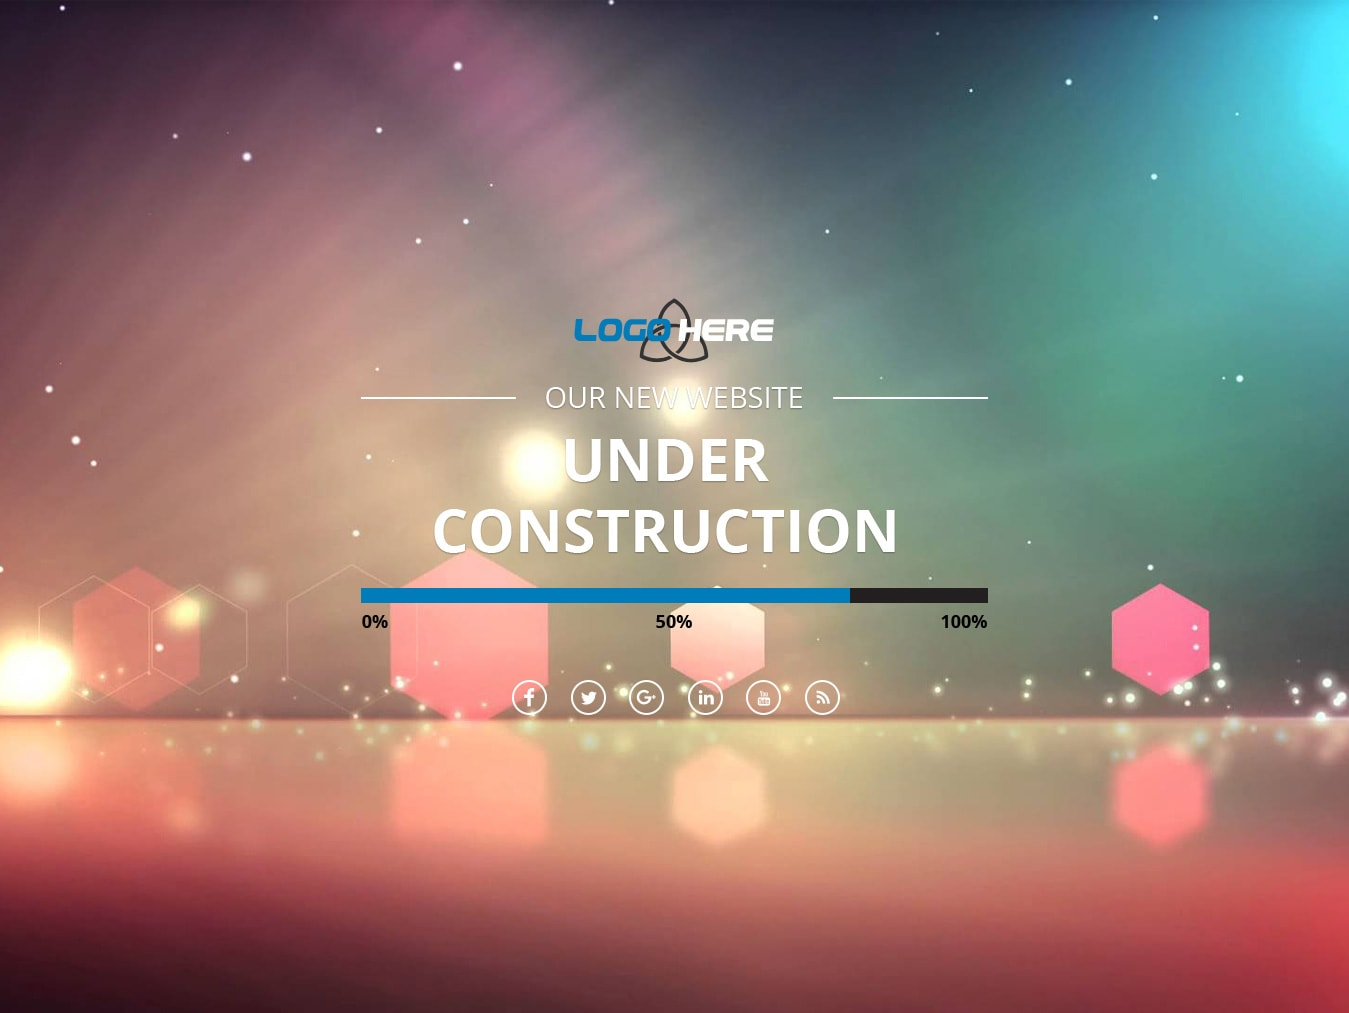 Under construction website  html css3 psd design free download